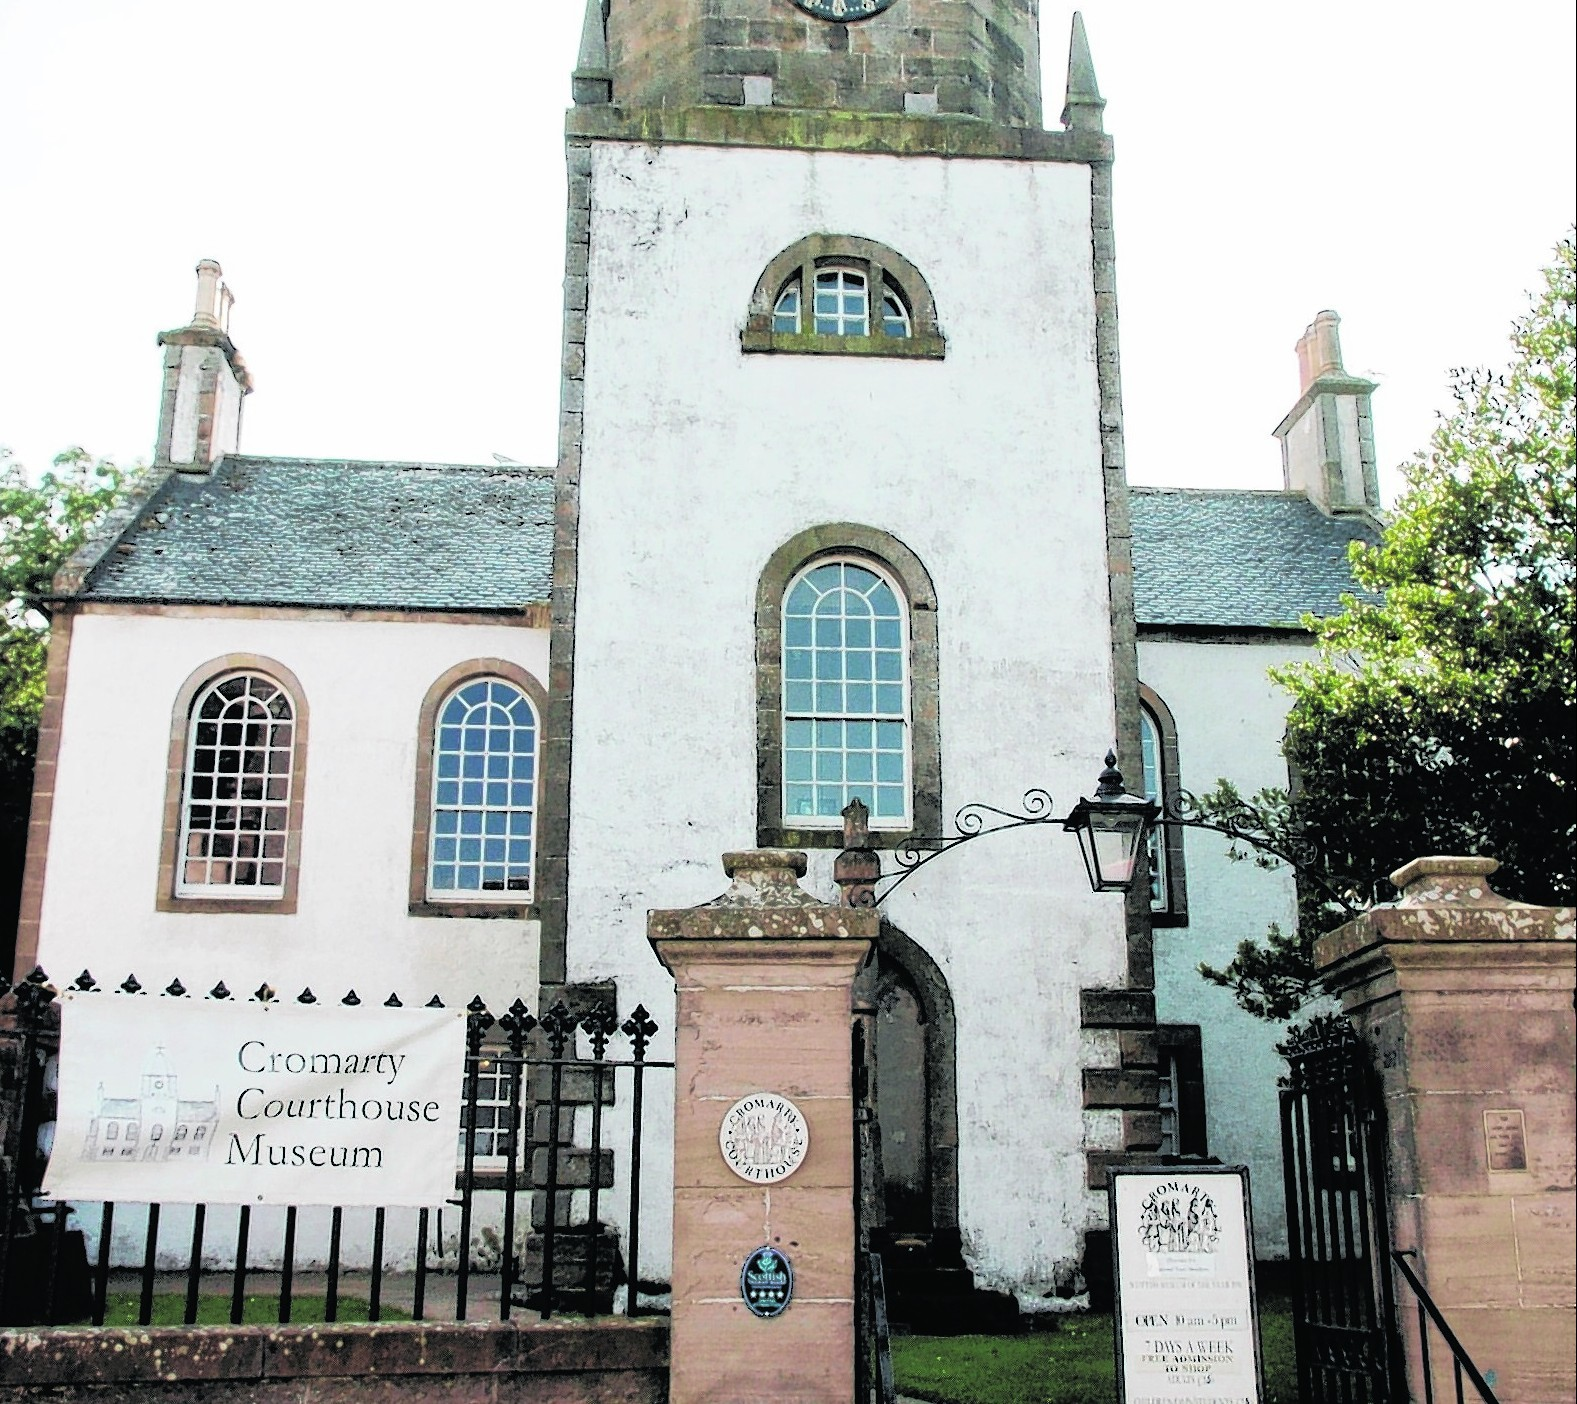 Cromarty Courthouse Museum